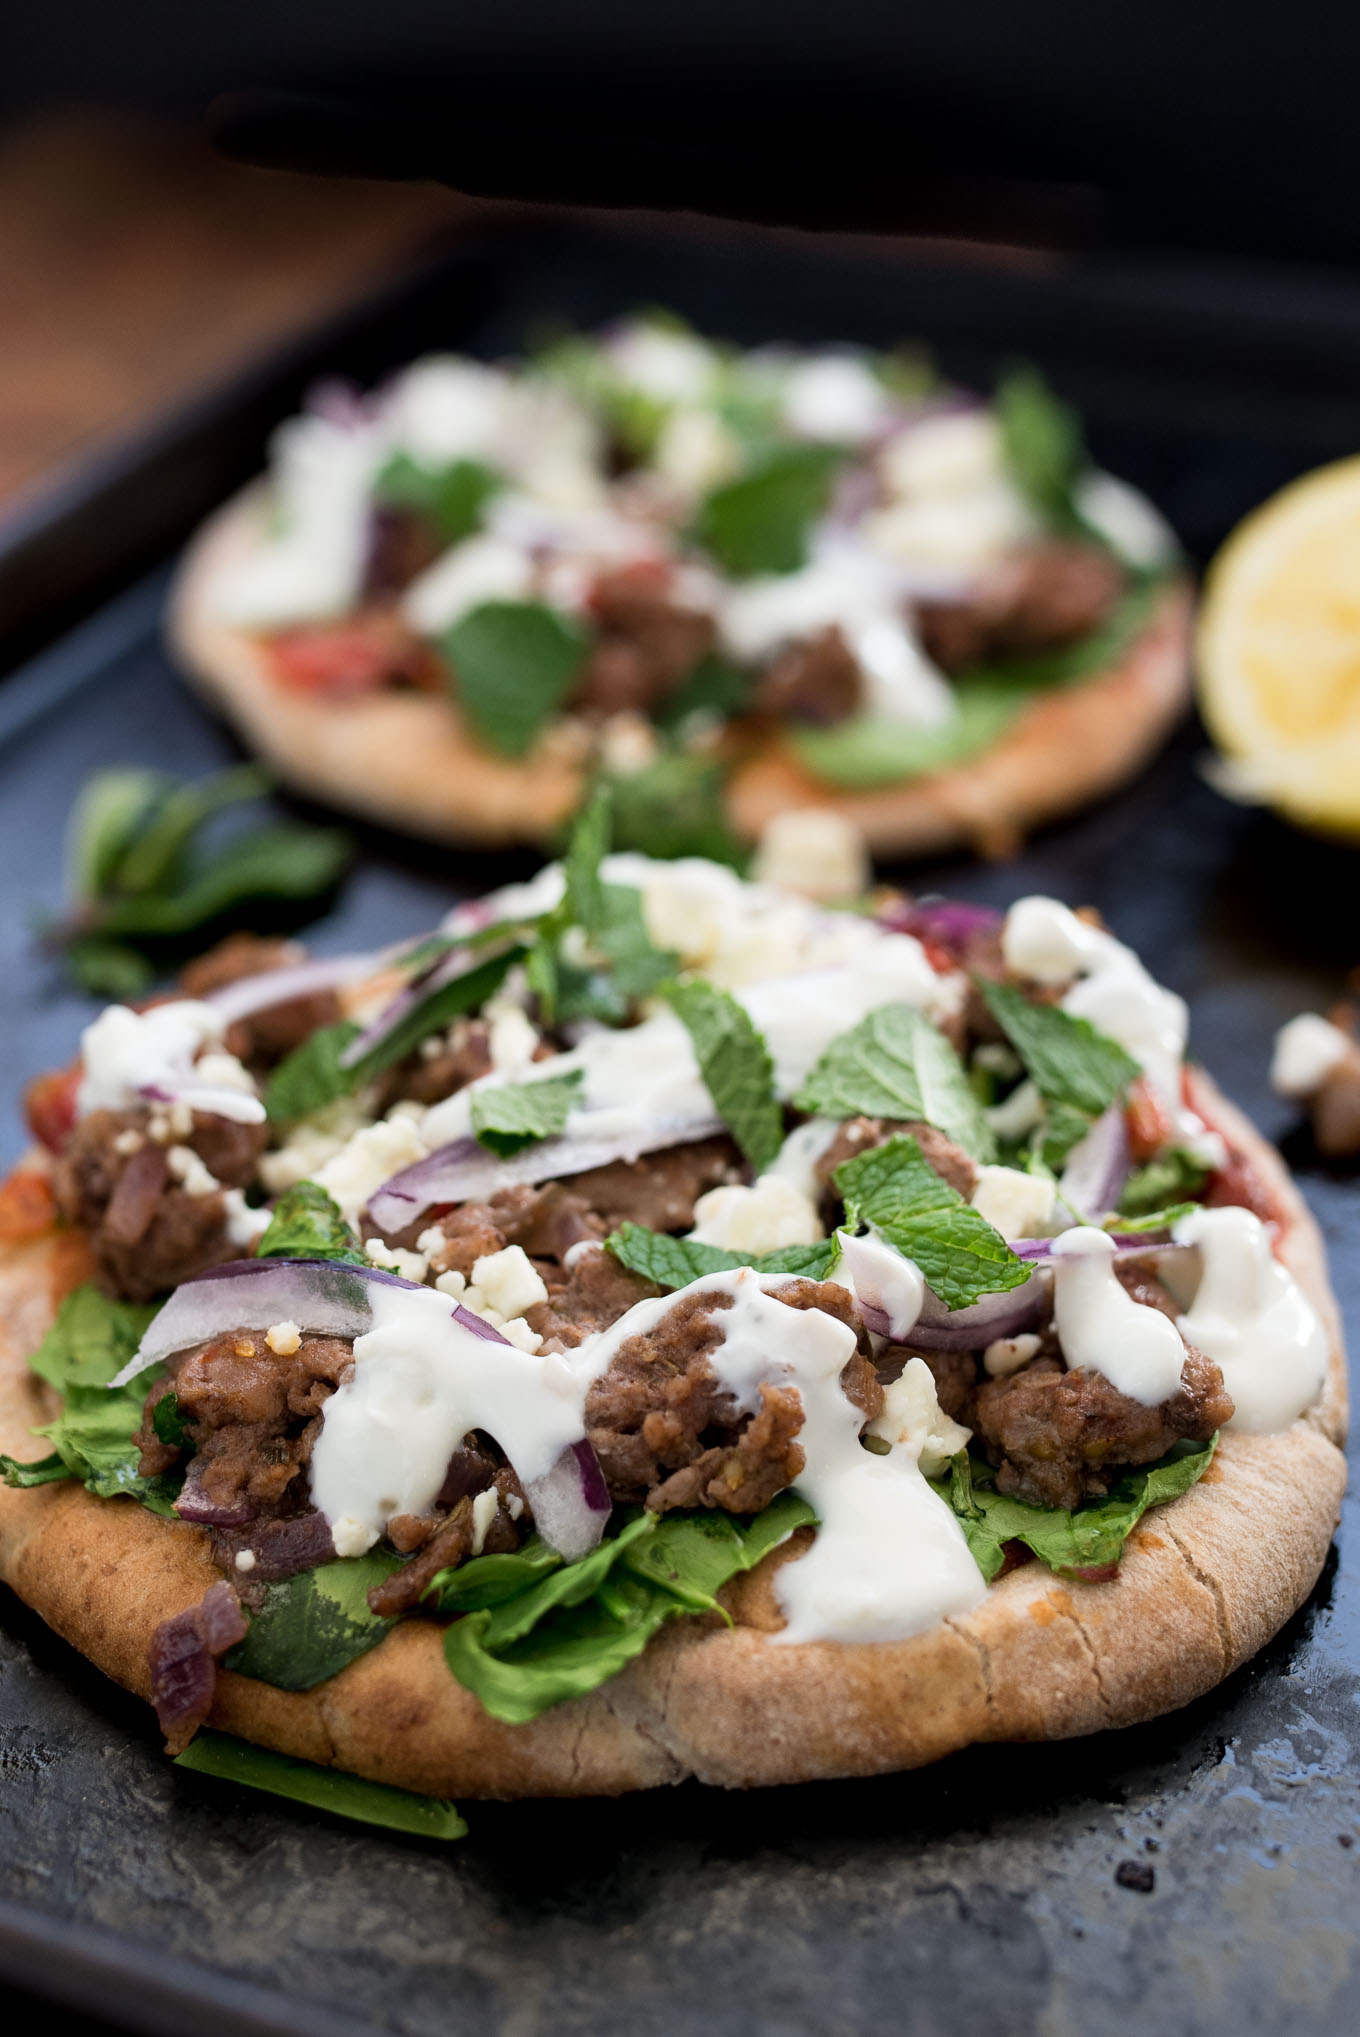 Lamb and Spinach Pita Pizza uses convenient pita bread for the crust and is flavor packed dish ready in under 30 minutes.